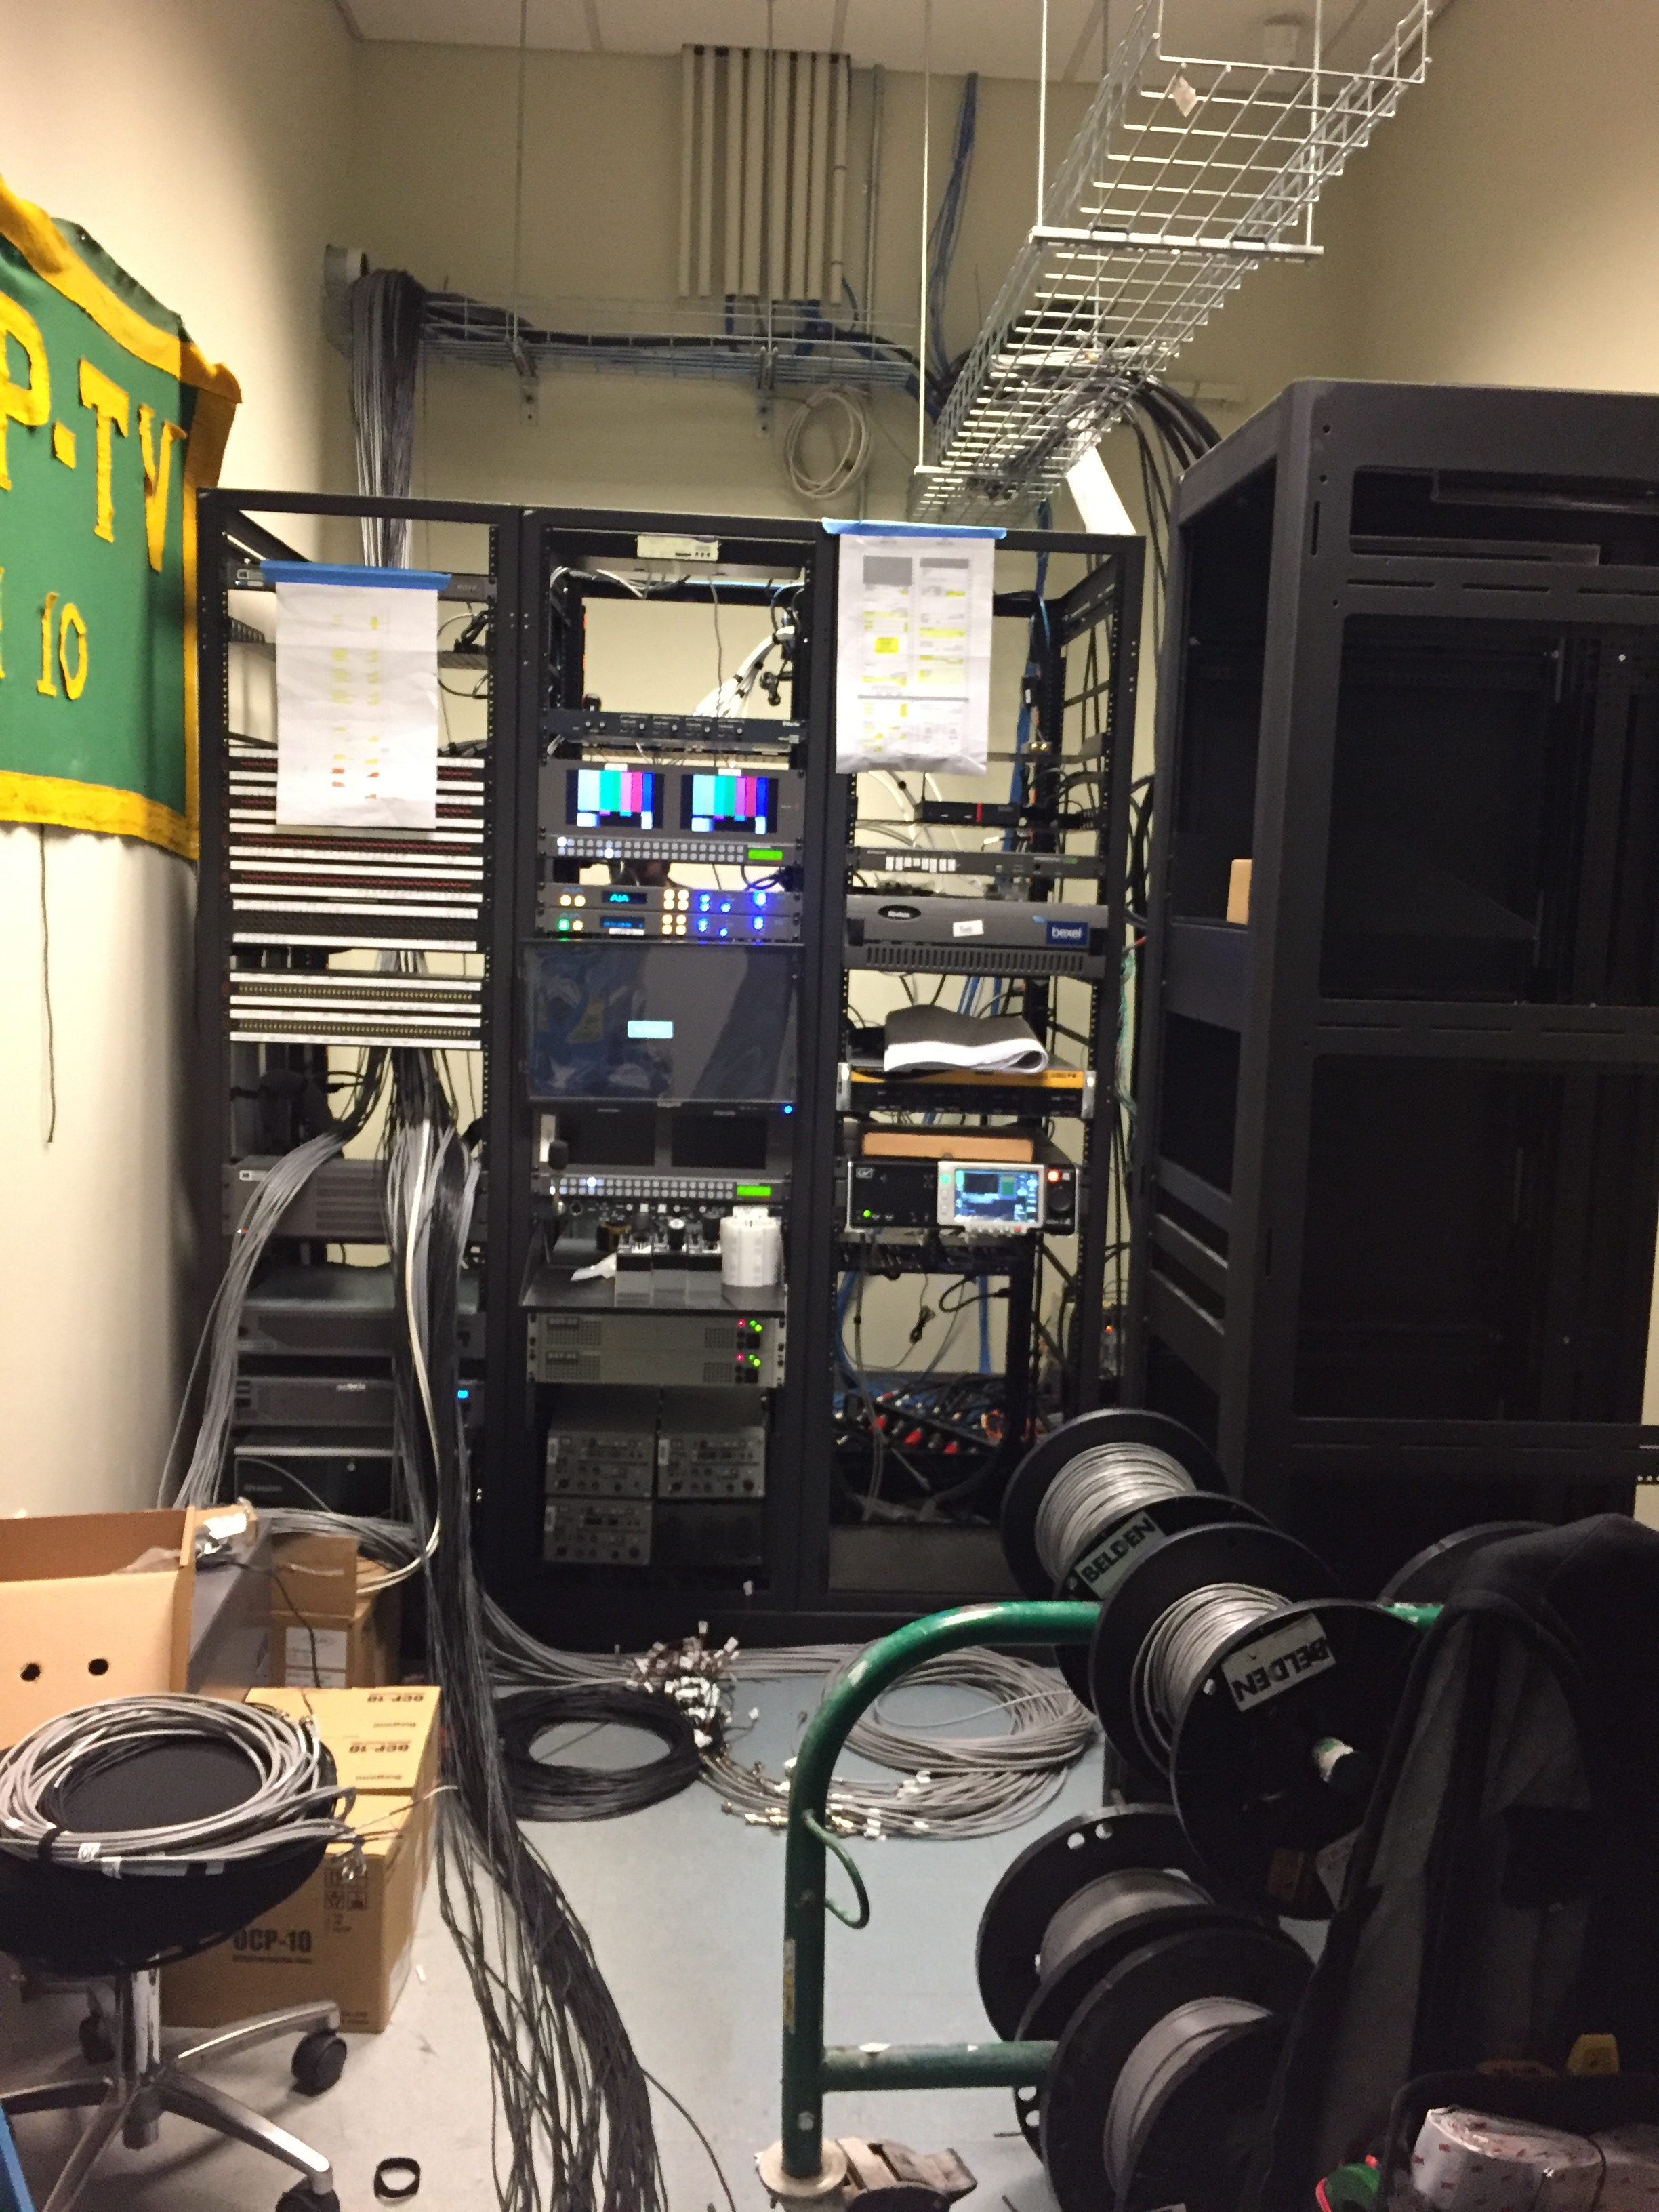 The rack room is coming together slowly